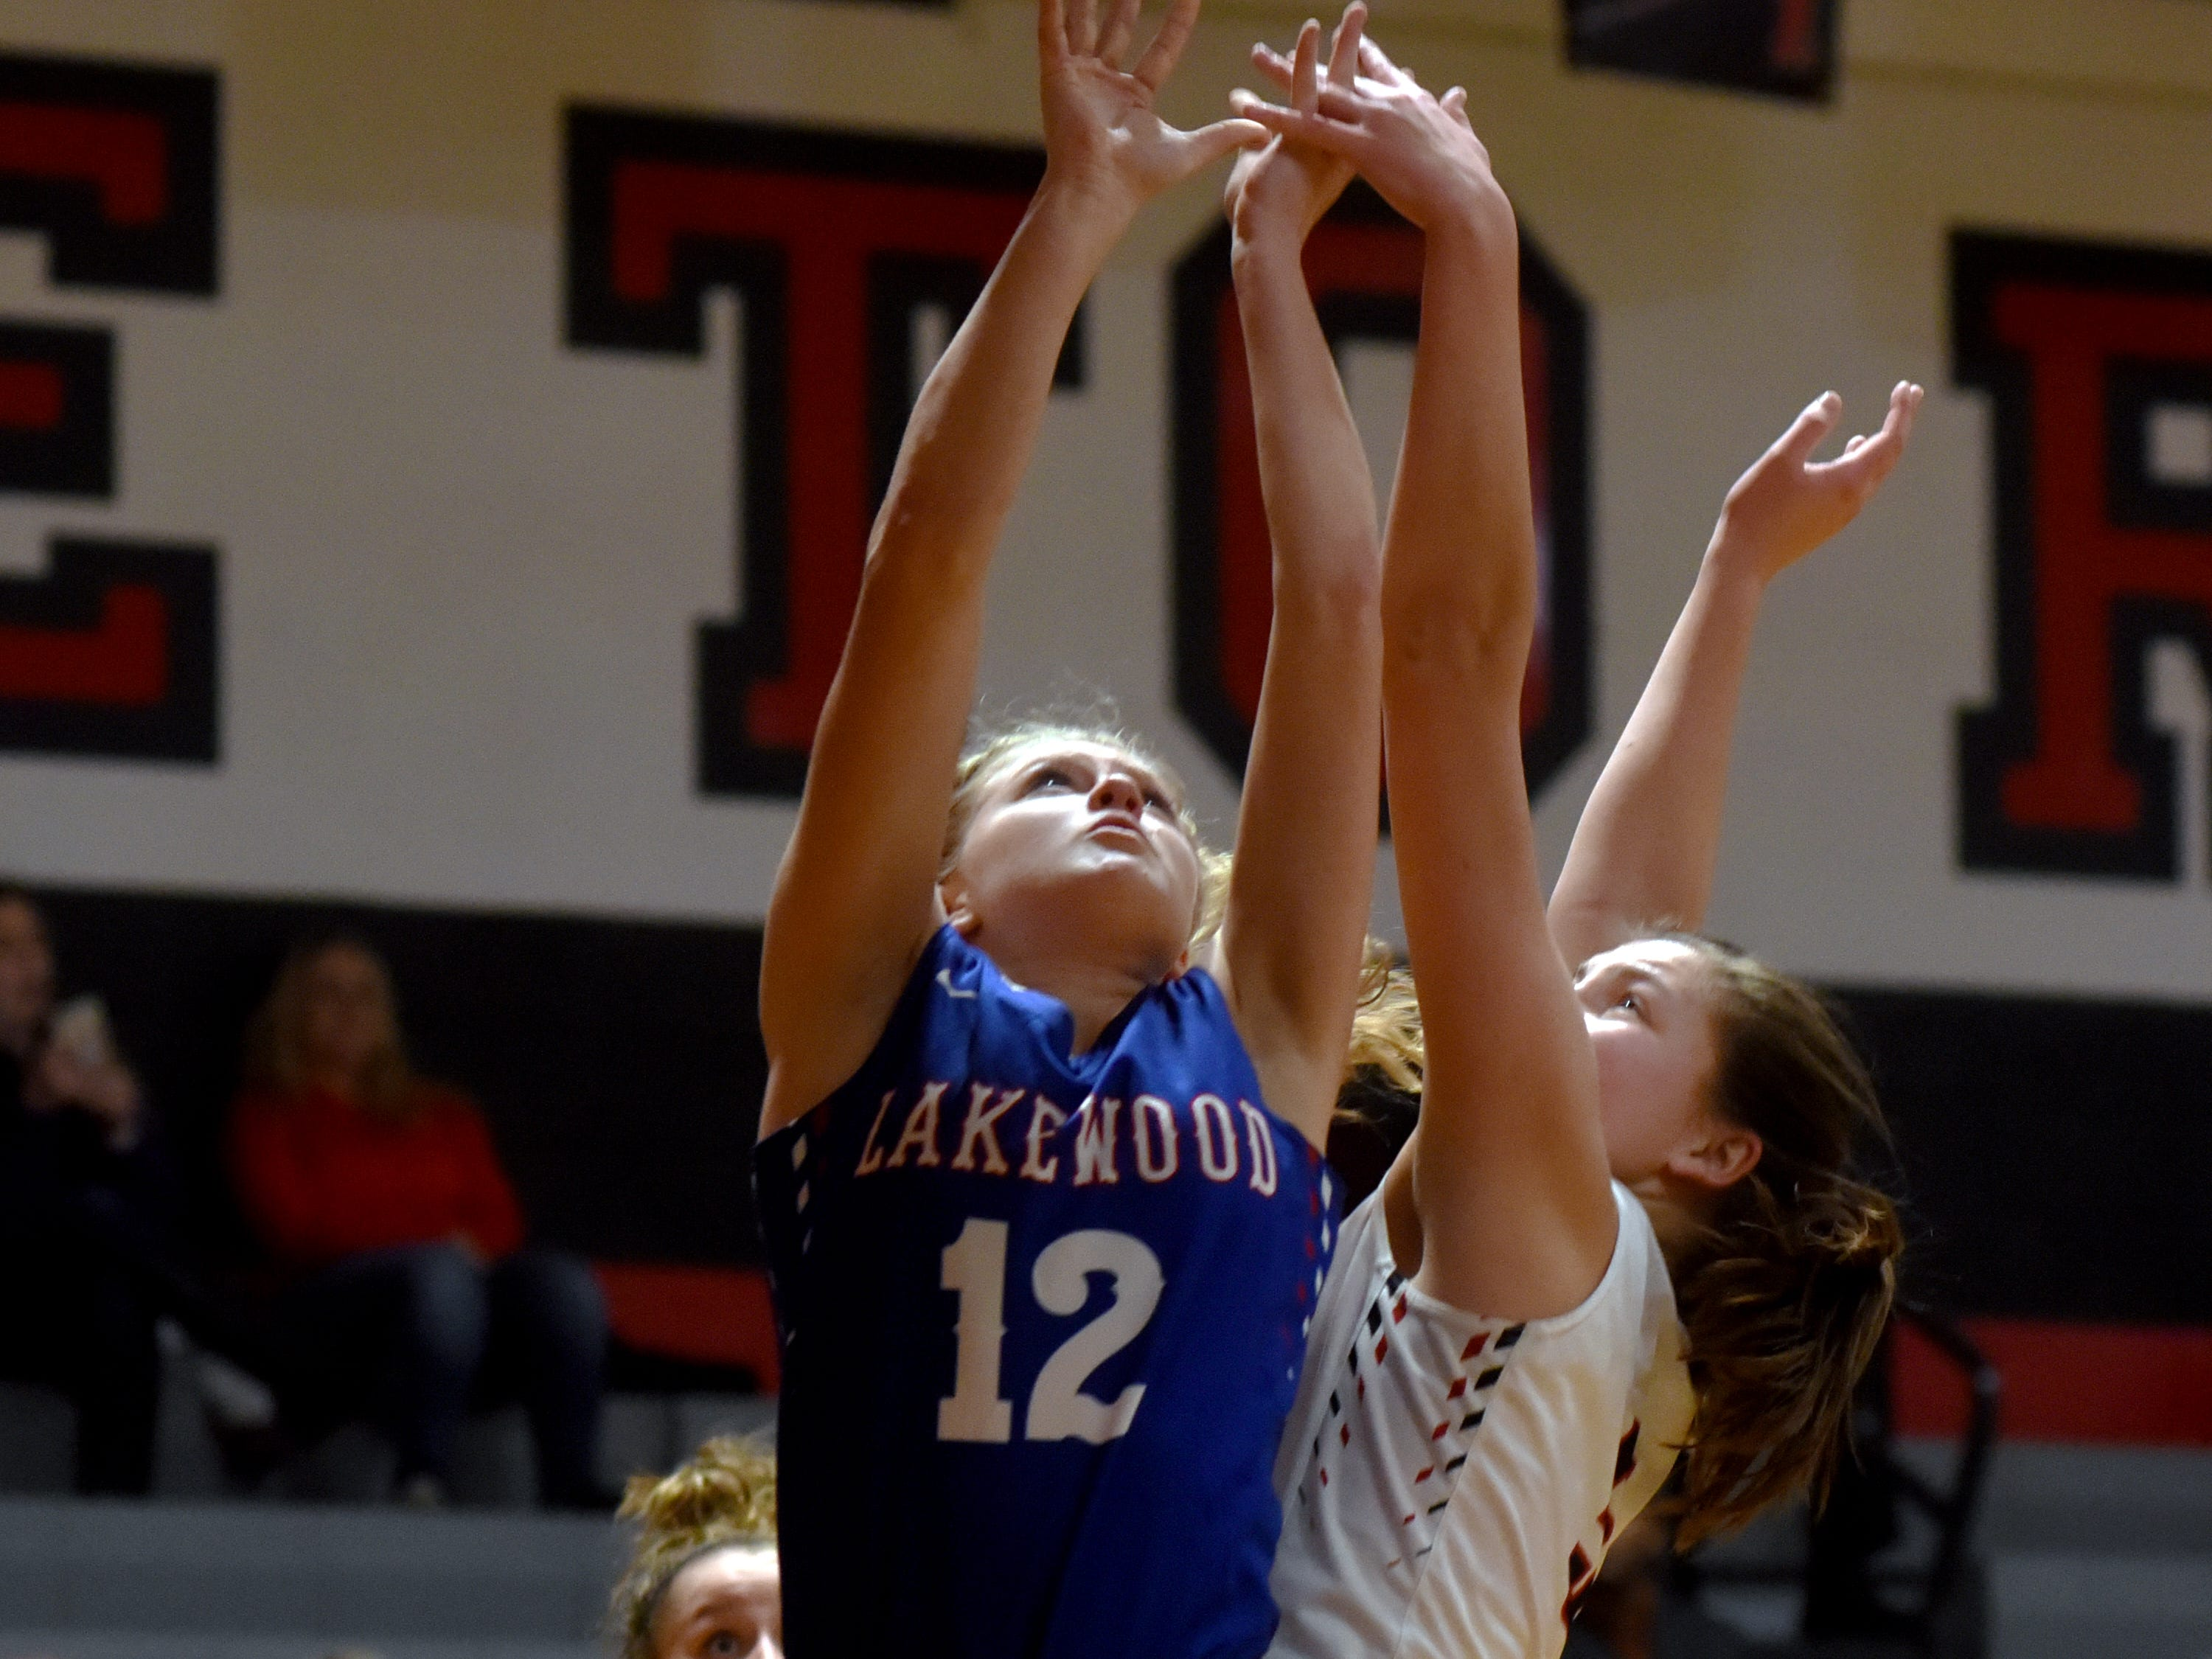 Lakewood's Camryn Martindale goes up for a rebound with Rosecrans' Maggie Hutcheson on Monday night at Rogge Gymnasium. Rosecrans won, 47-44, to improve to 12-2 overall.